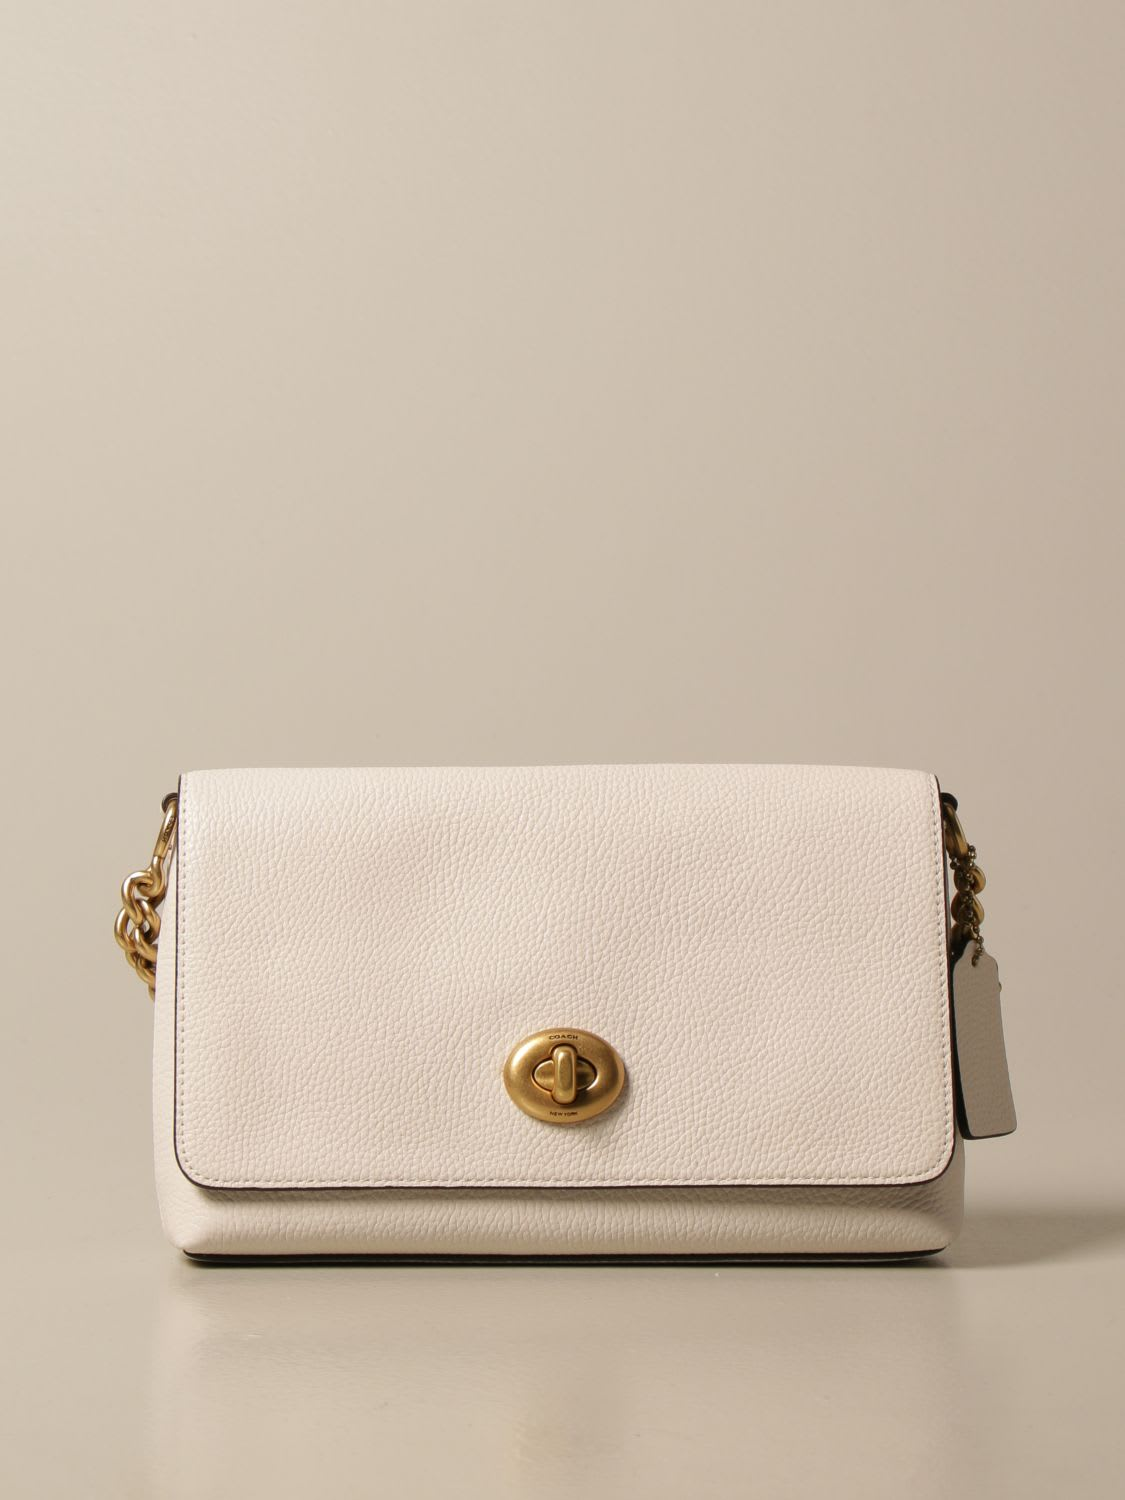 Coach Crossbody Bags Coach Shoulder Bag In Textured Leather